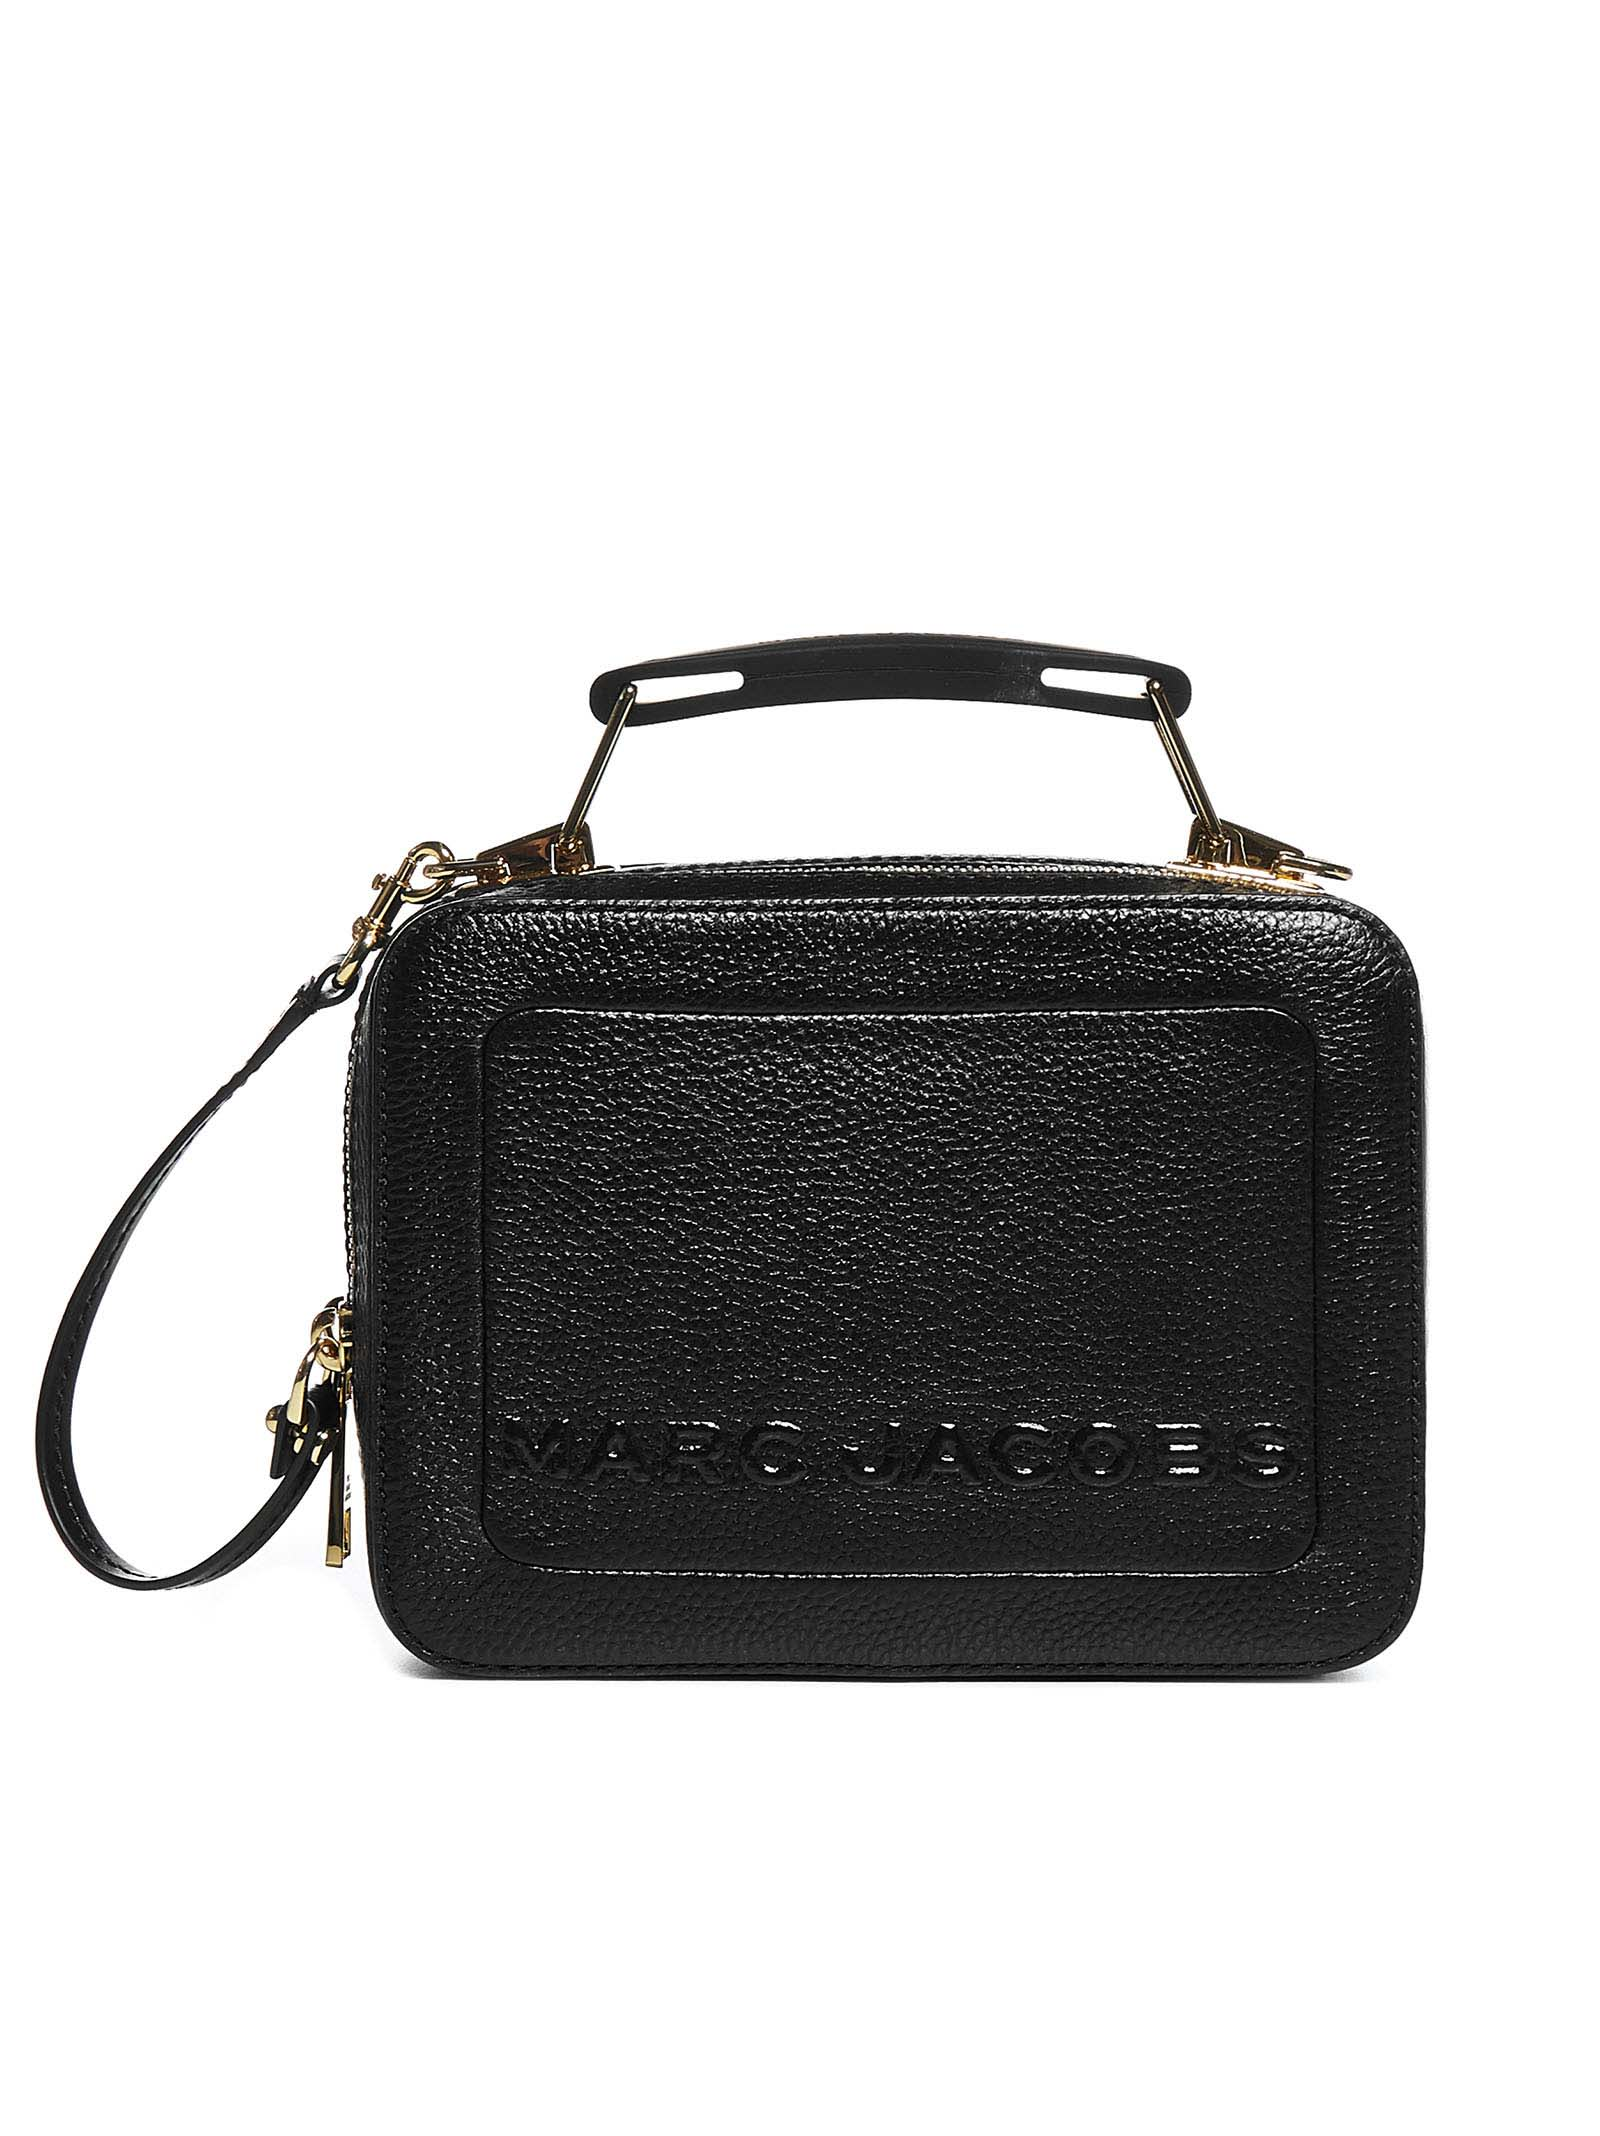 Marc Jacobs The Box 20 Leather Bag